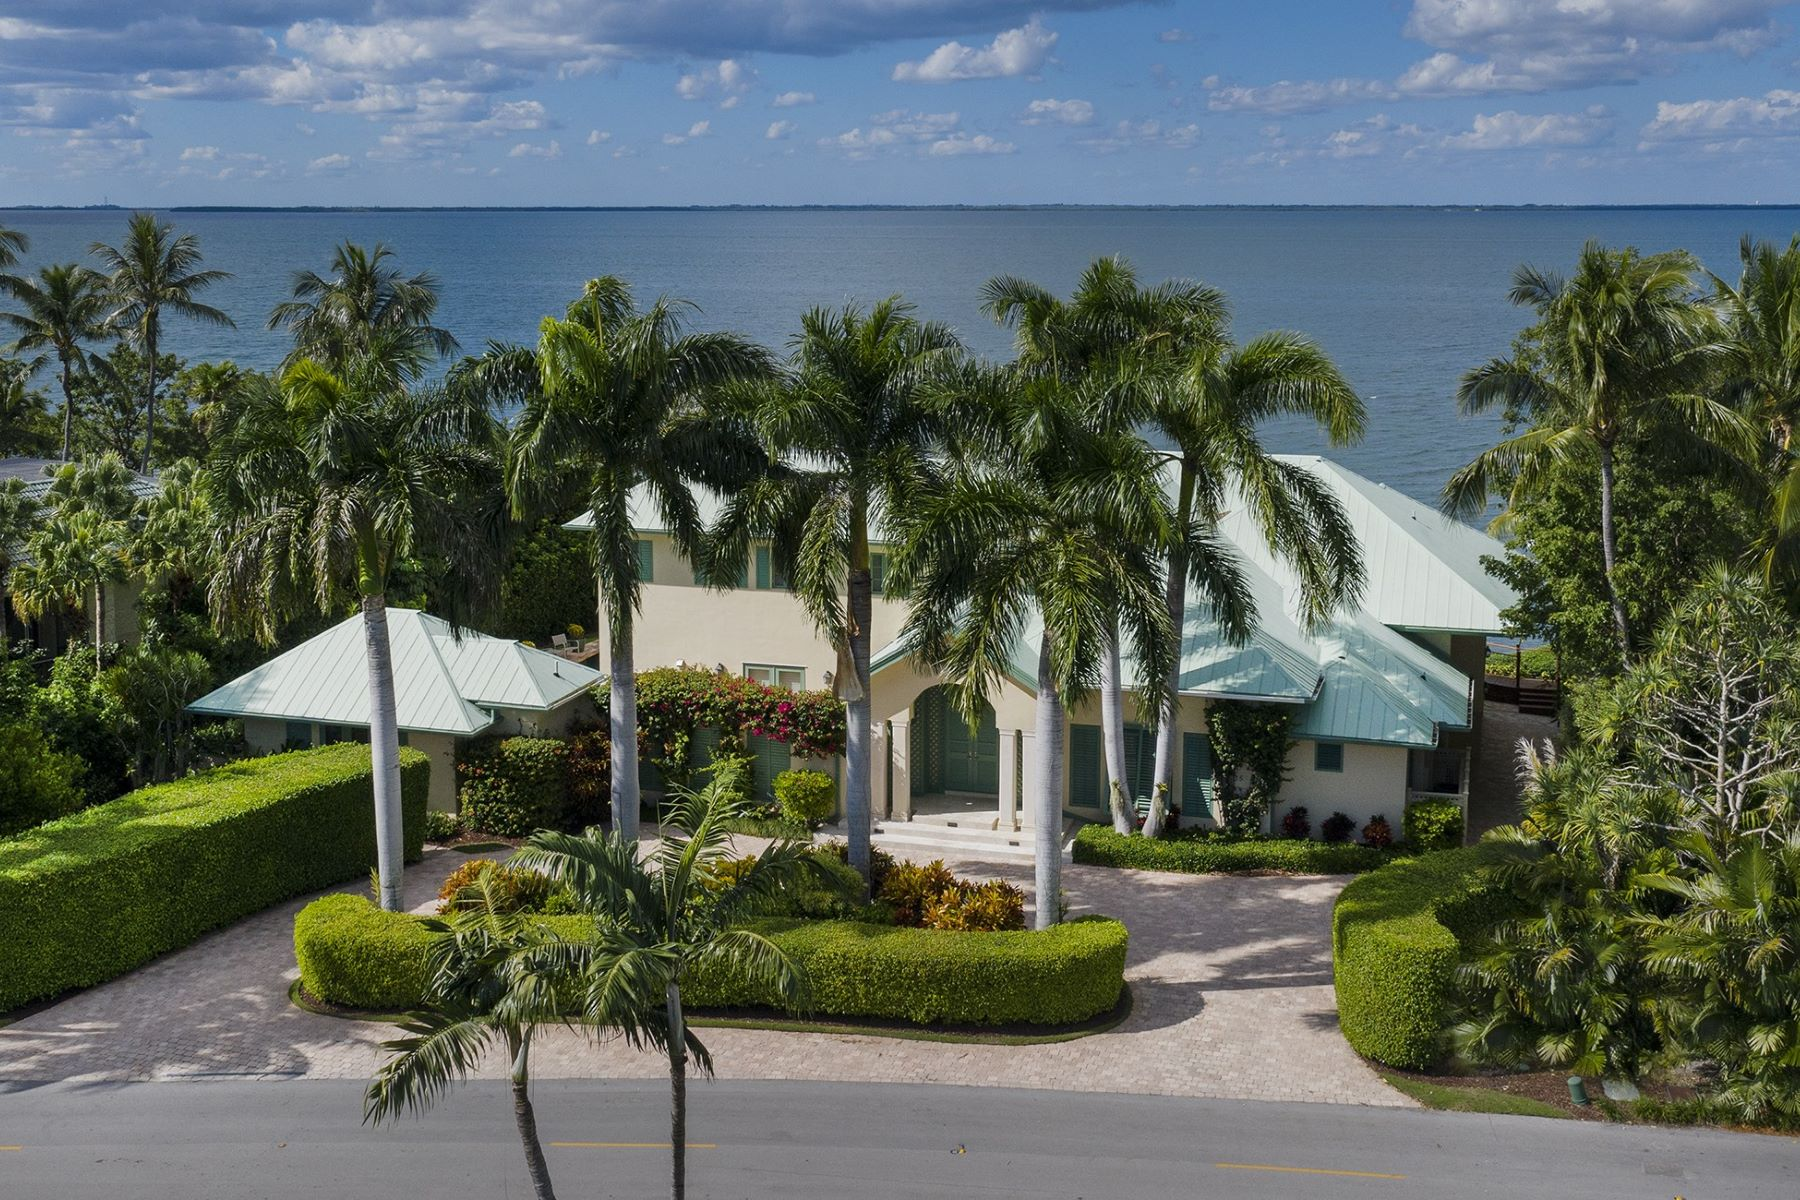 Single Family Homes for Sale at 35 Card Sound Road, Key Largo, FL 35 Card Sound Road Key Largo, Florida 33037 United States